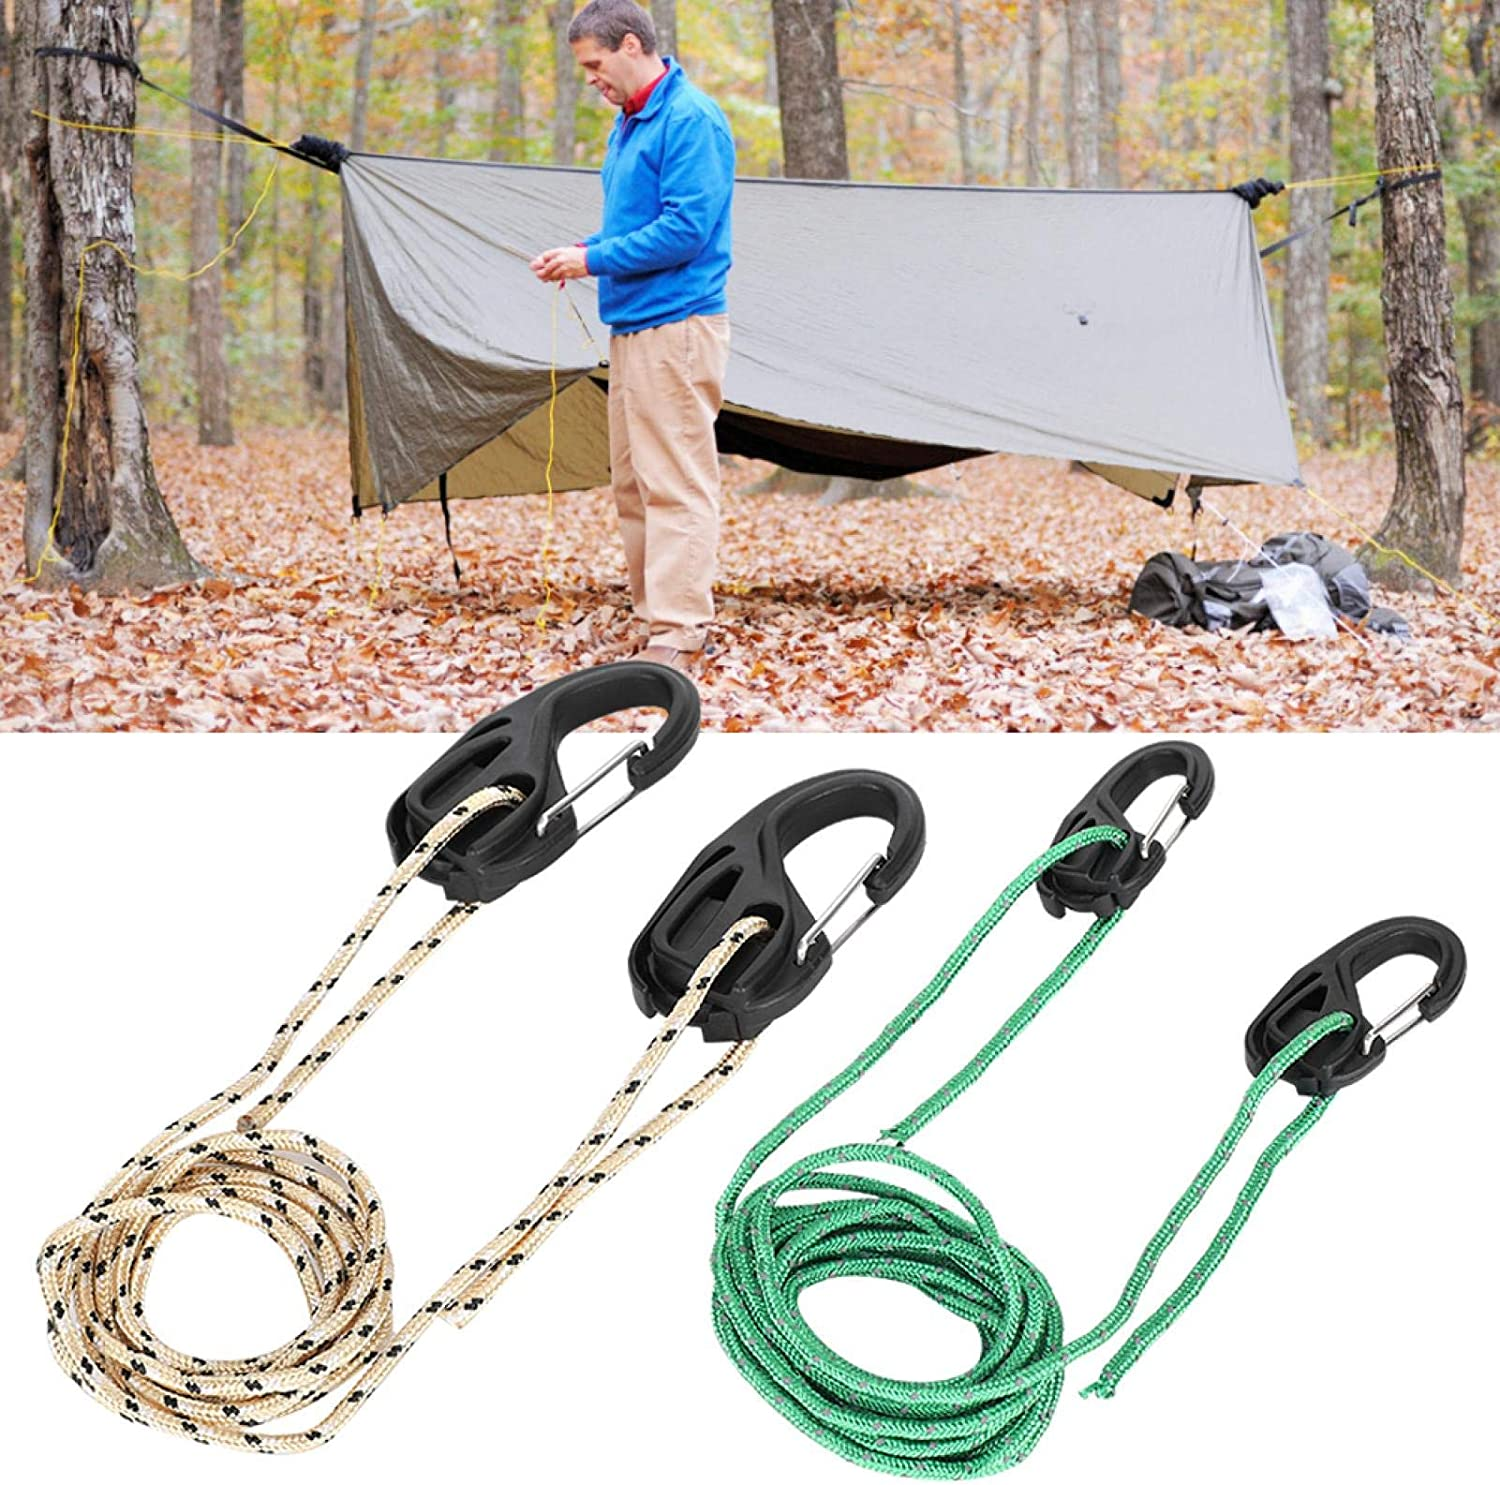 Cotton Rope for Indoor Fans for Planting Lights KUIDAMOS Carabiners Accessories Full Adjustable Outdoor Camping Hanging Rope Plastic